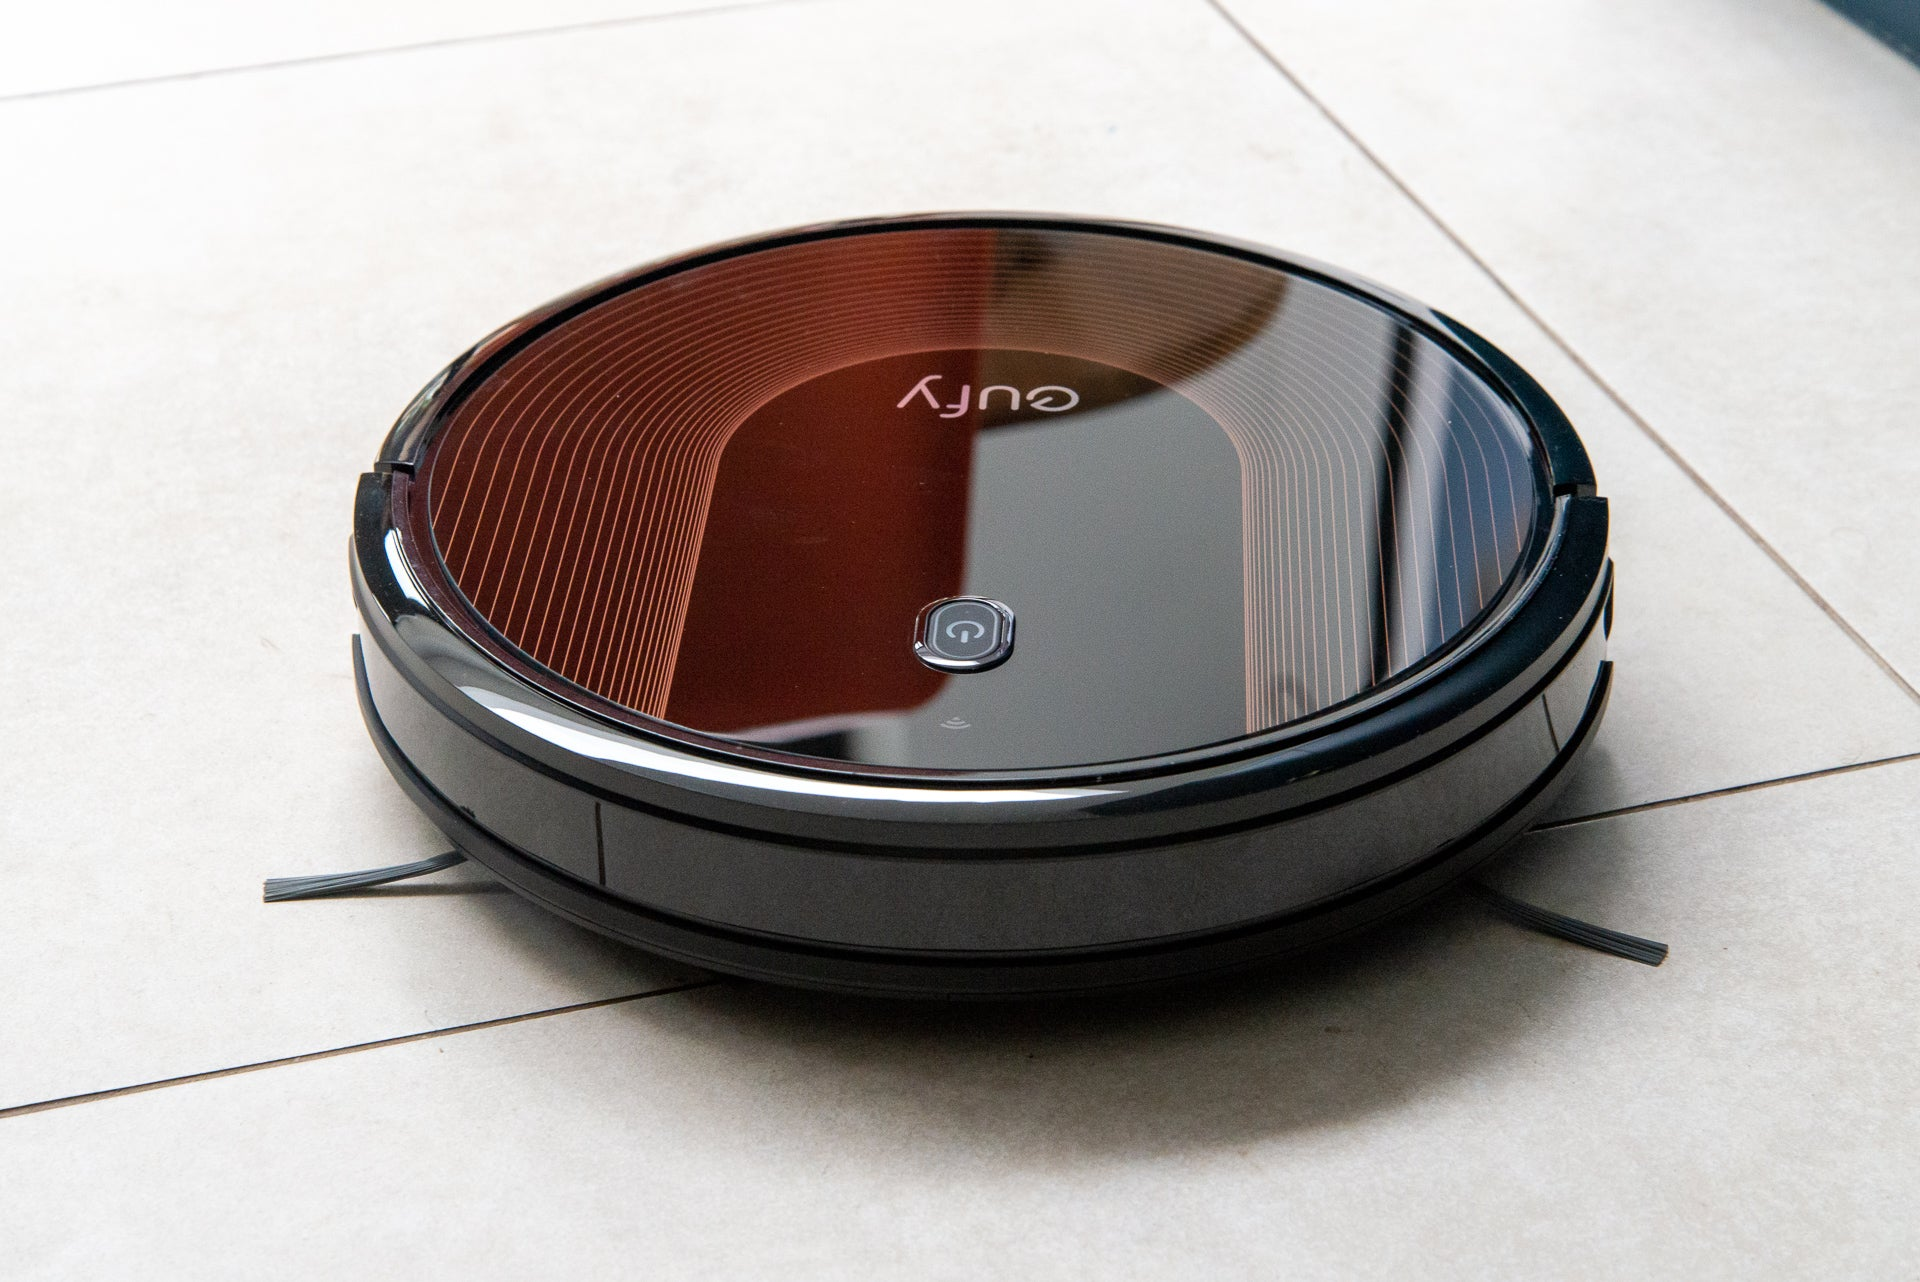 eufy by Anker, BoostIQ RoboVac 30C, Robot Vacuum Cleaner, Wi